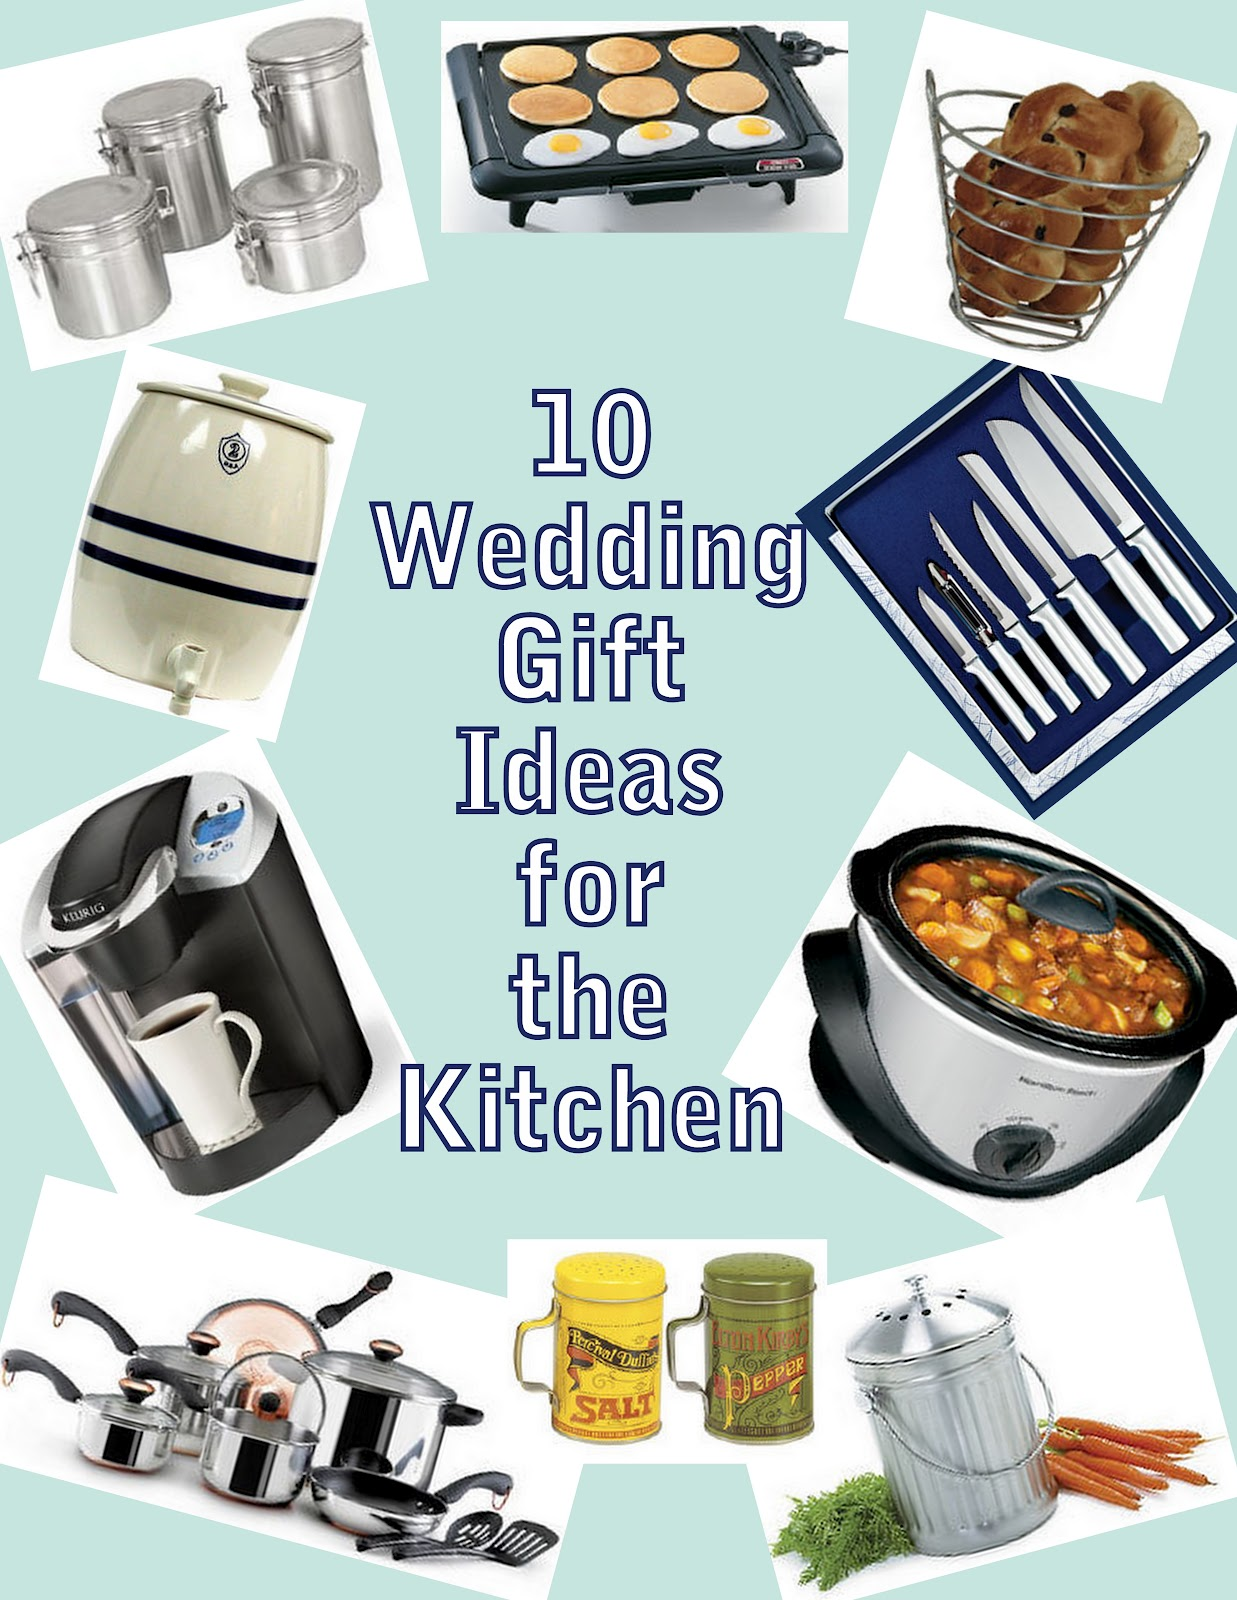 Wedding Gifts For Kitchen : Pressure Cooking and Canning : Wedding Gift Ideas for the Kitchen